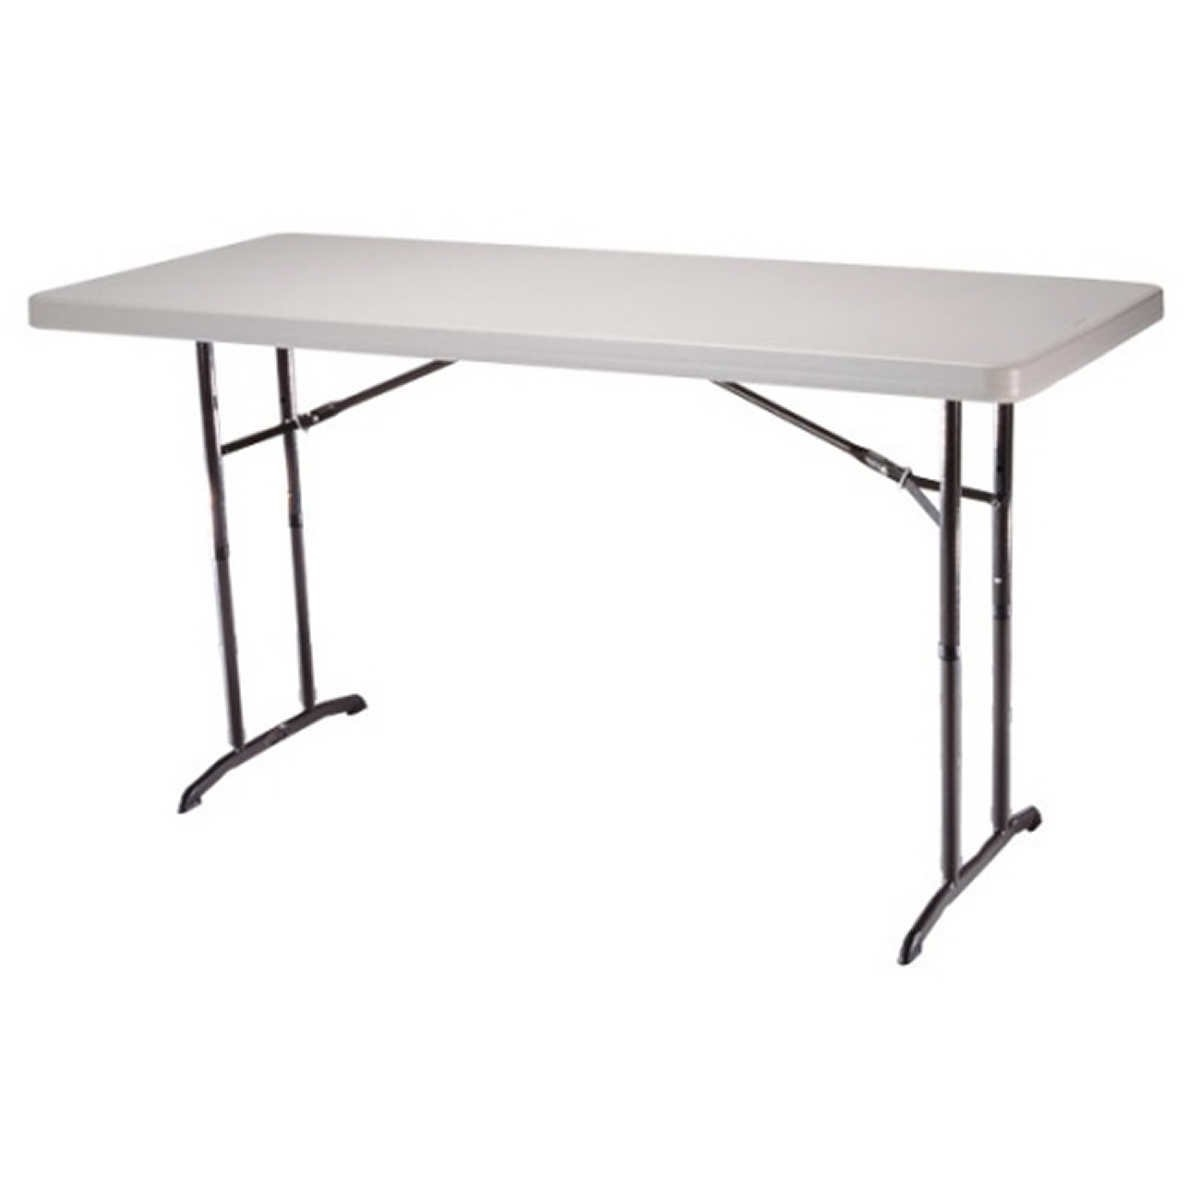 Cheap Foldable Tables | Costco Folding Tables | Cheap Plastic Folding Tables